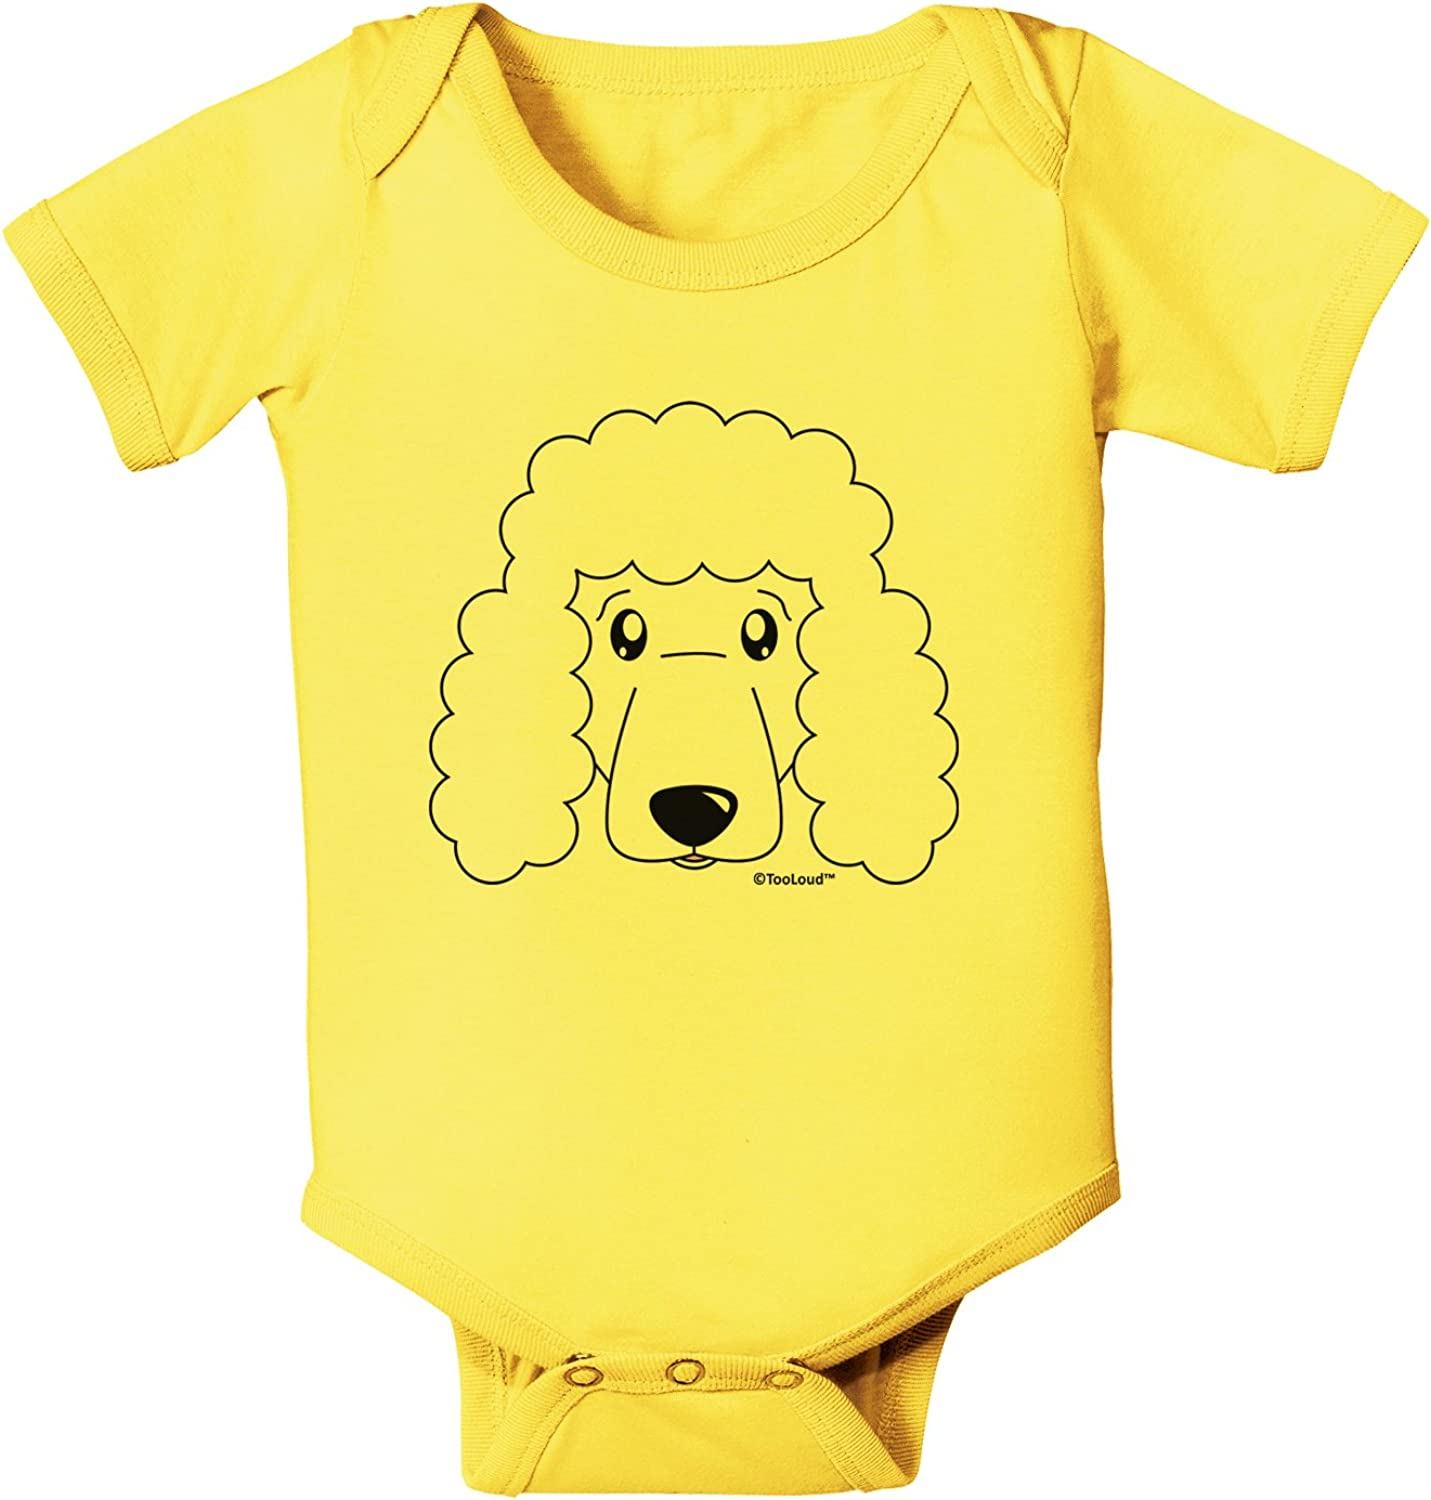 White Baby Romper Bodysuit TooLoud Cute Poodle Dog